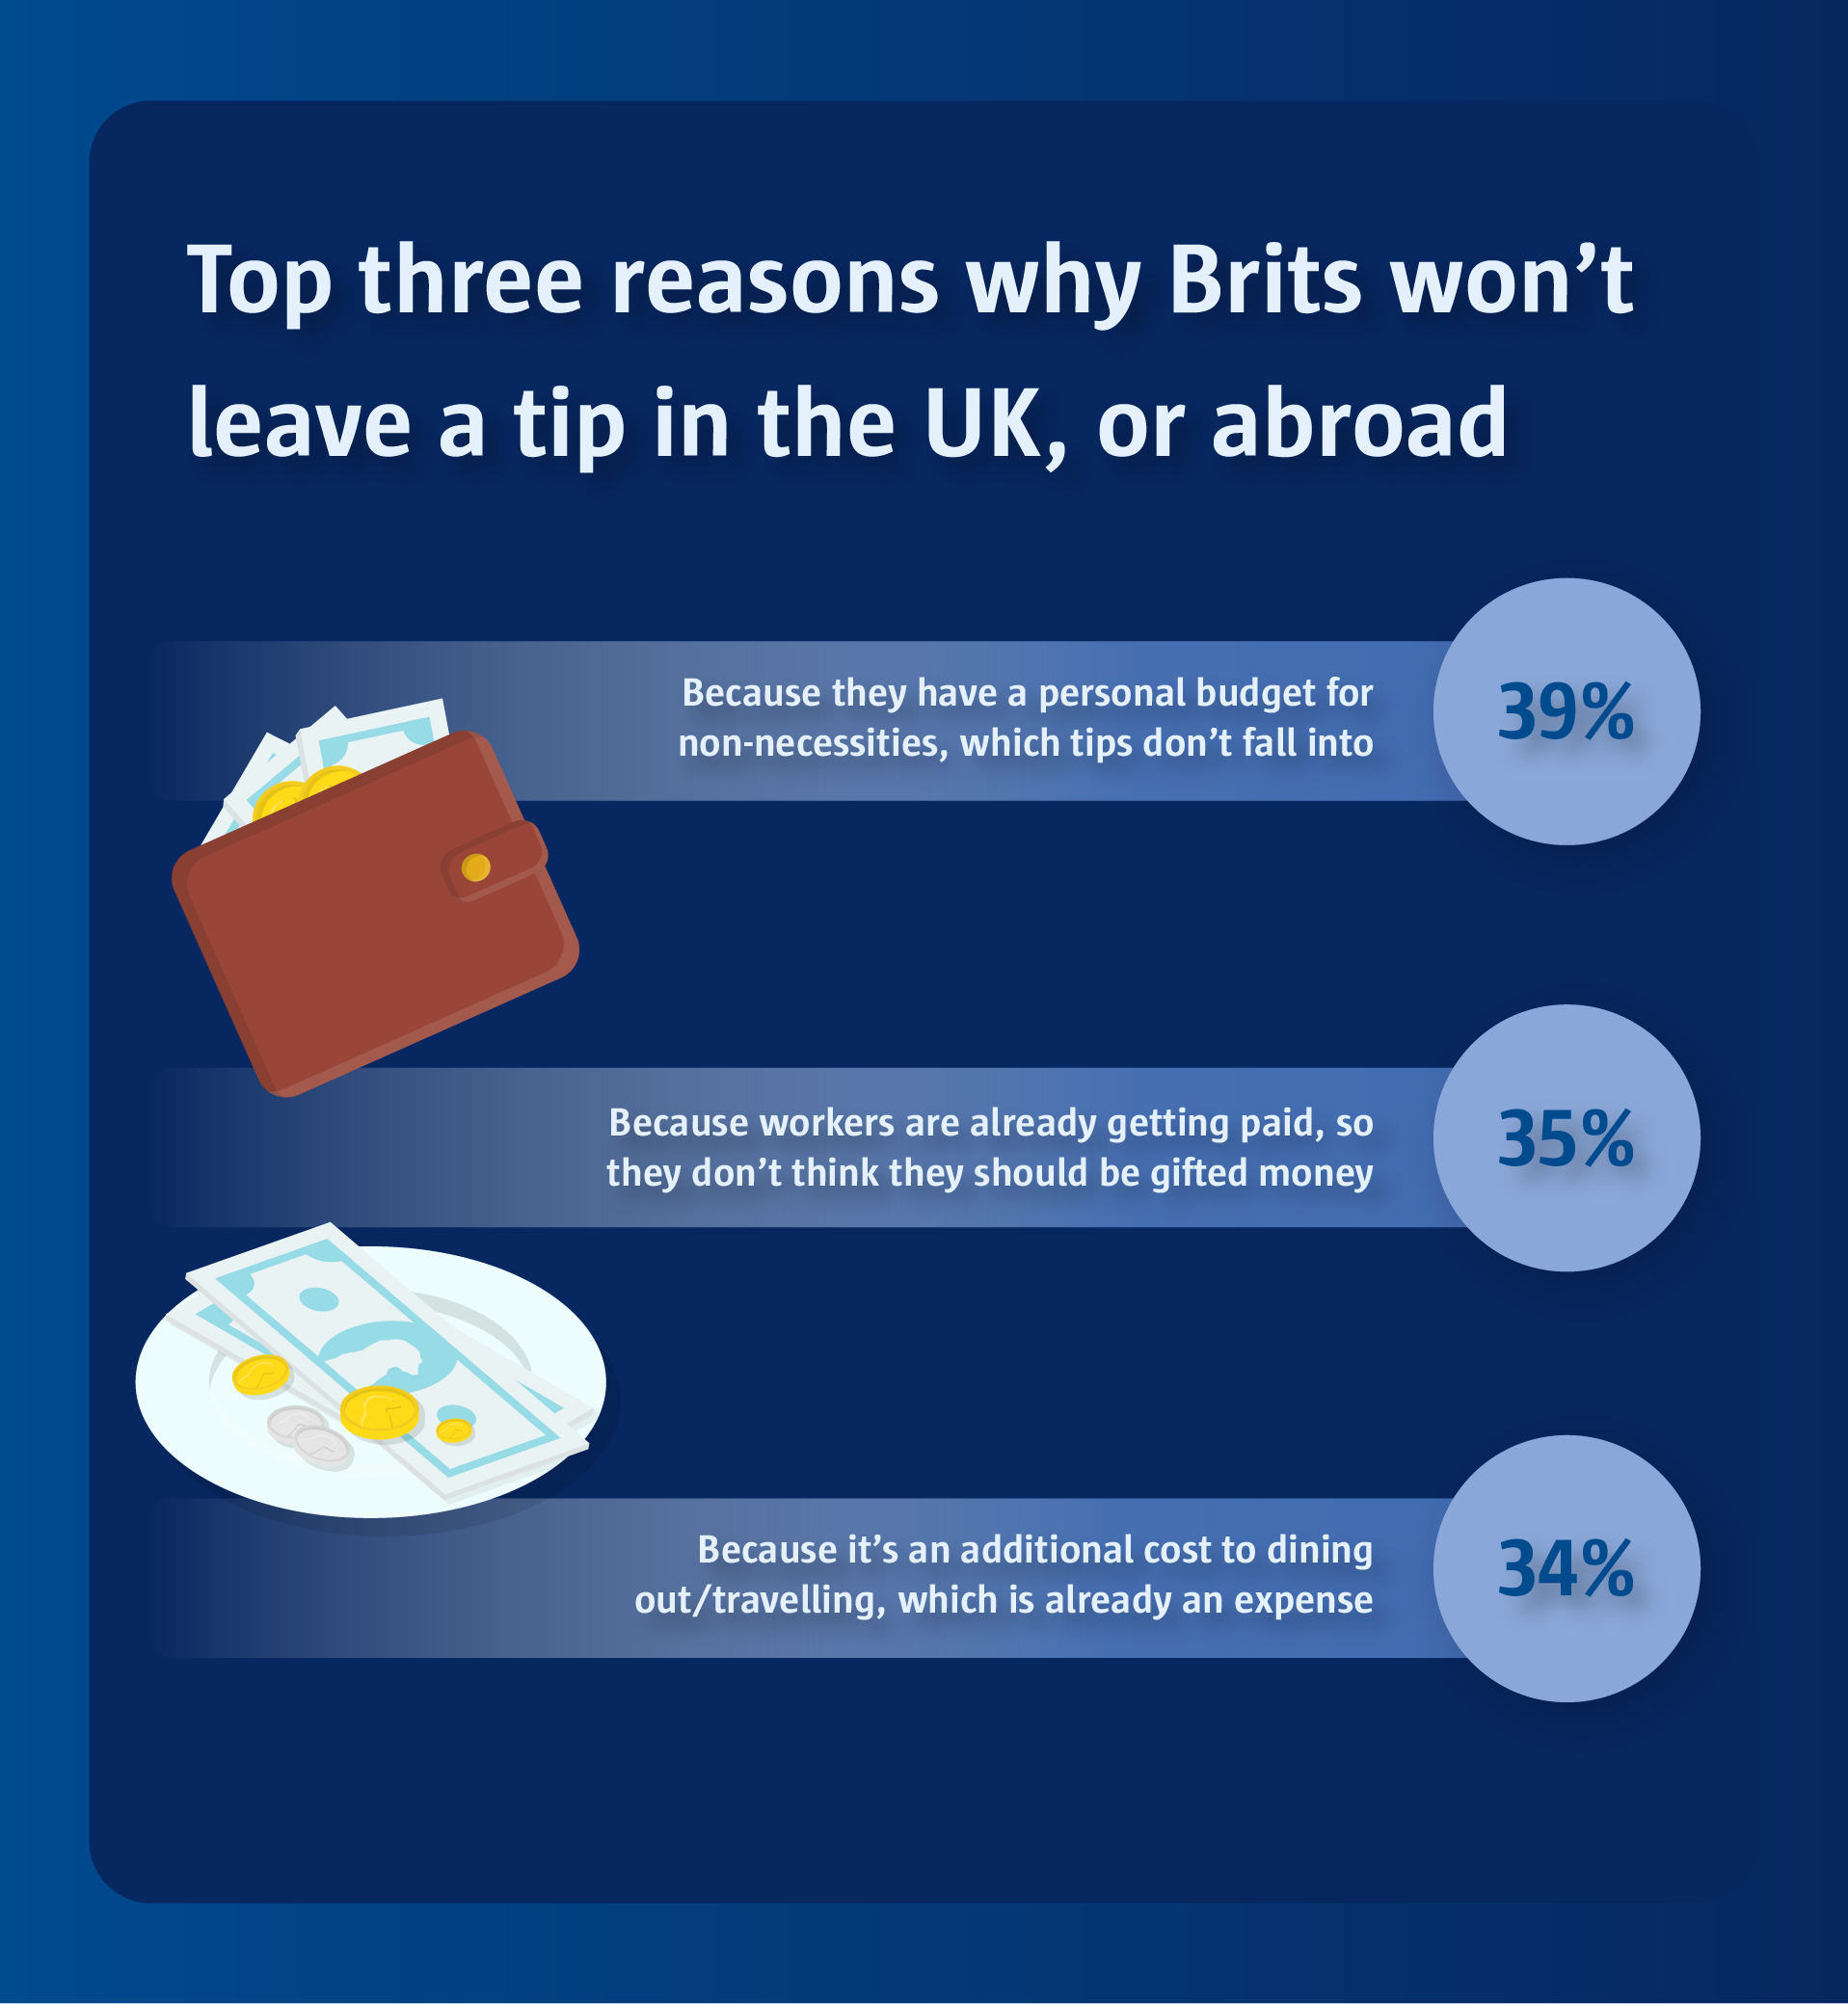 Top three reasons why Brits won't leave a tip in the UK, or abroad